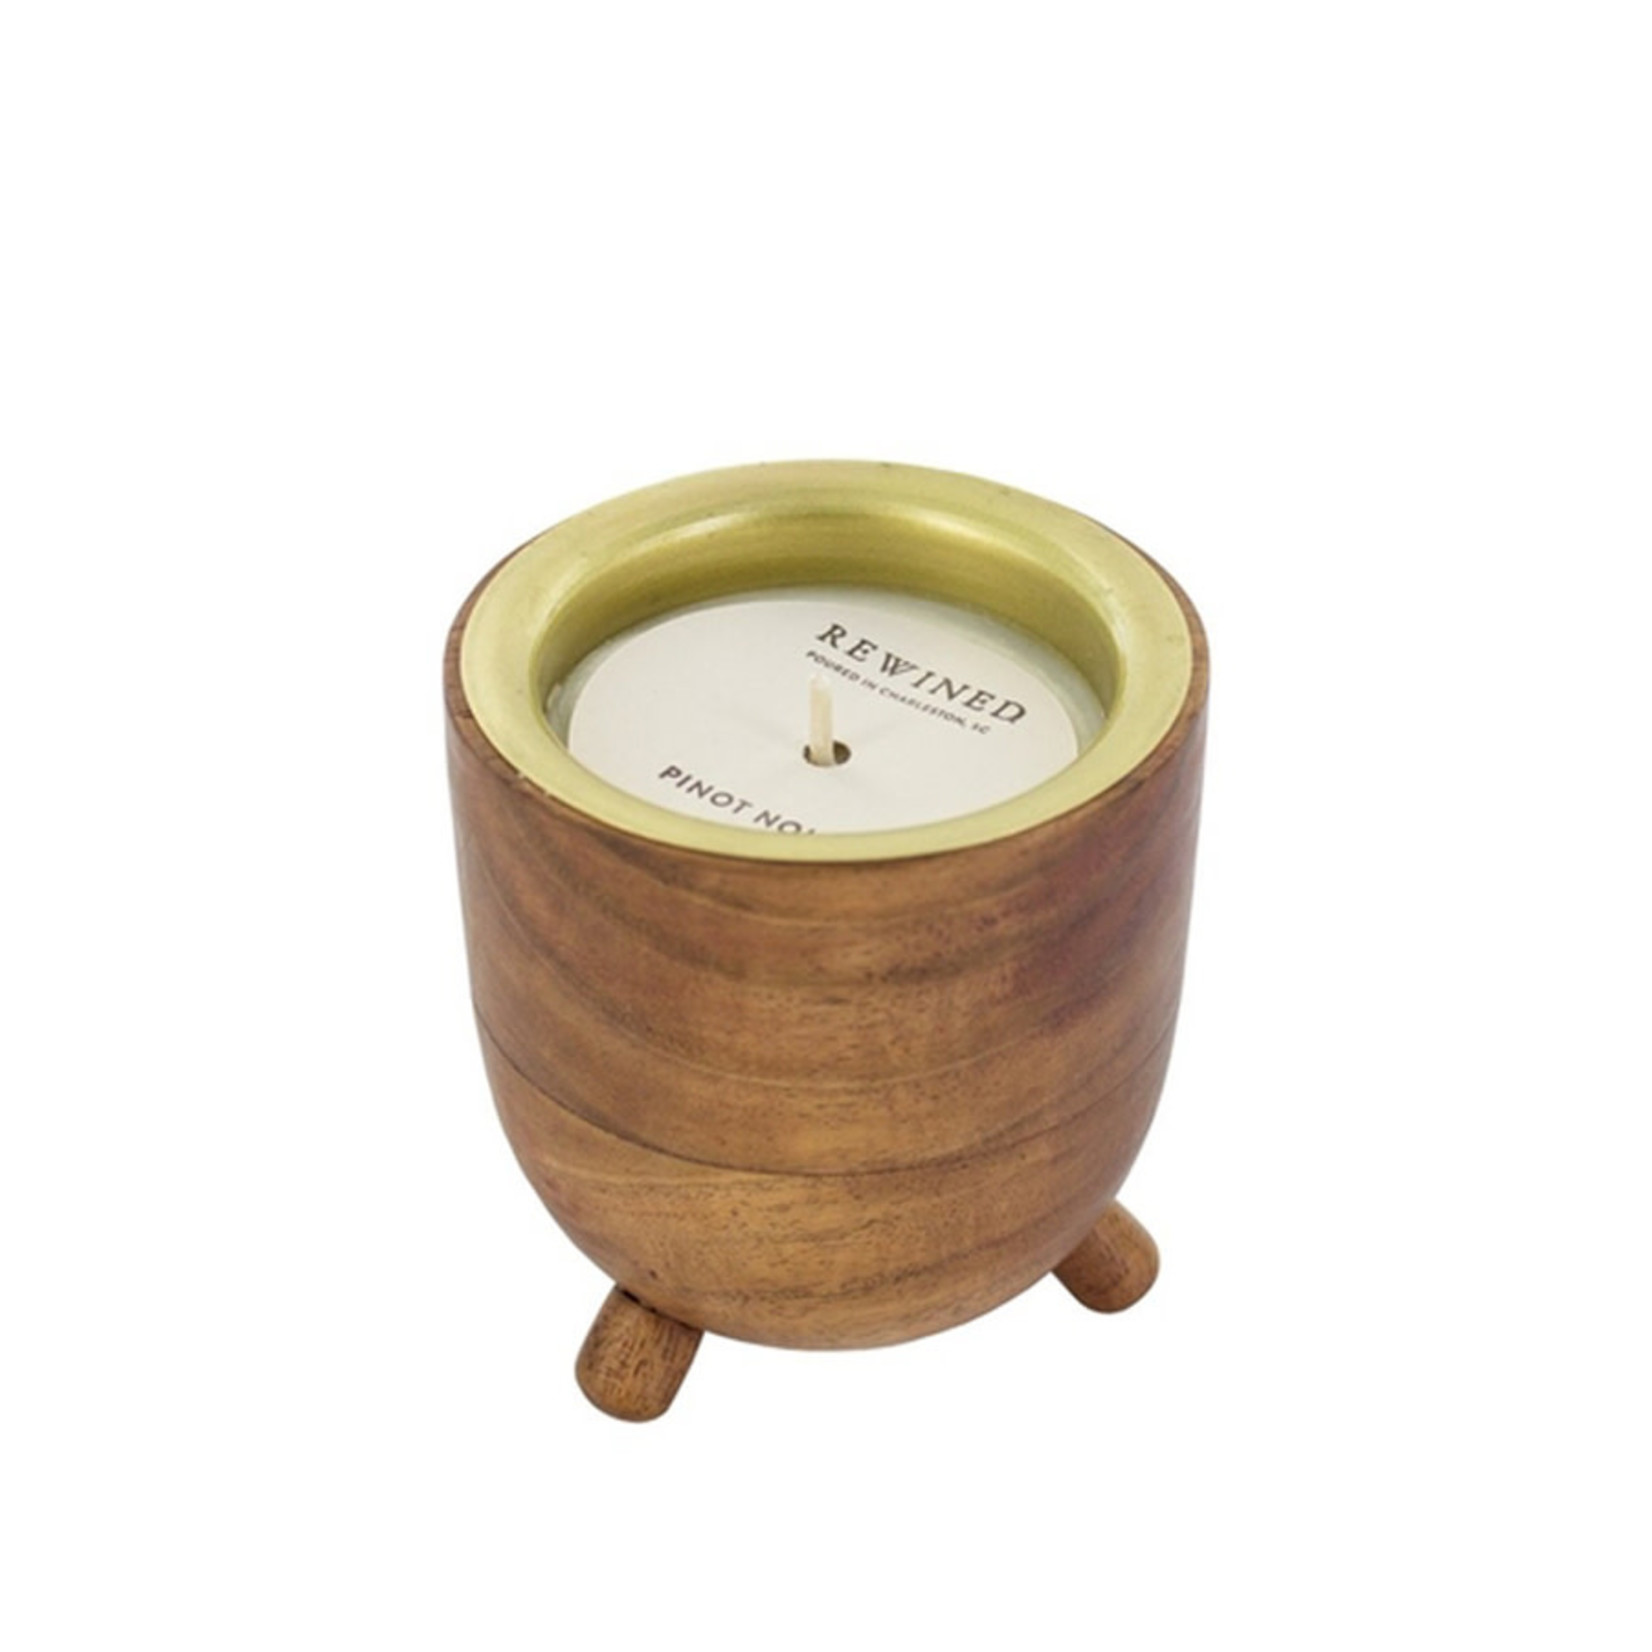 Rewined Barrel Aged Candle